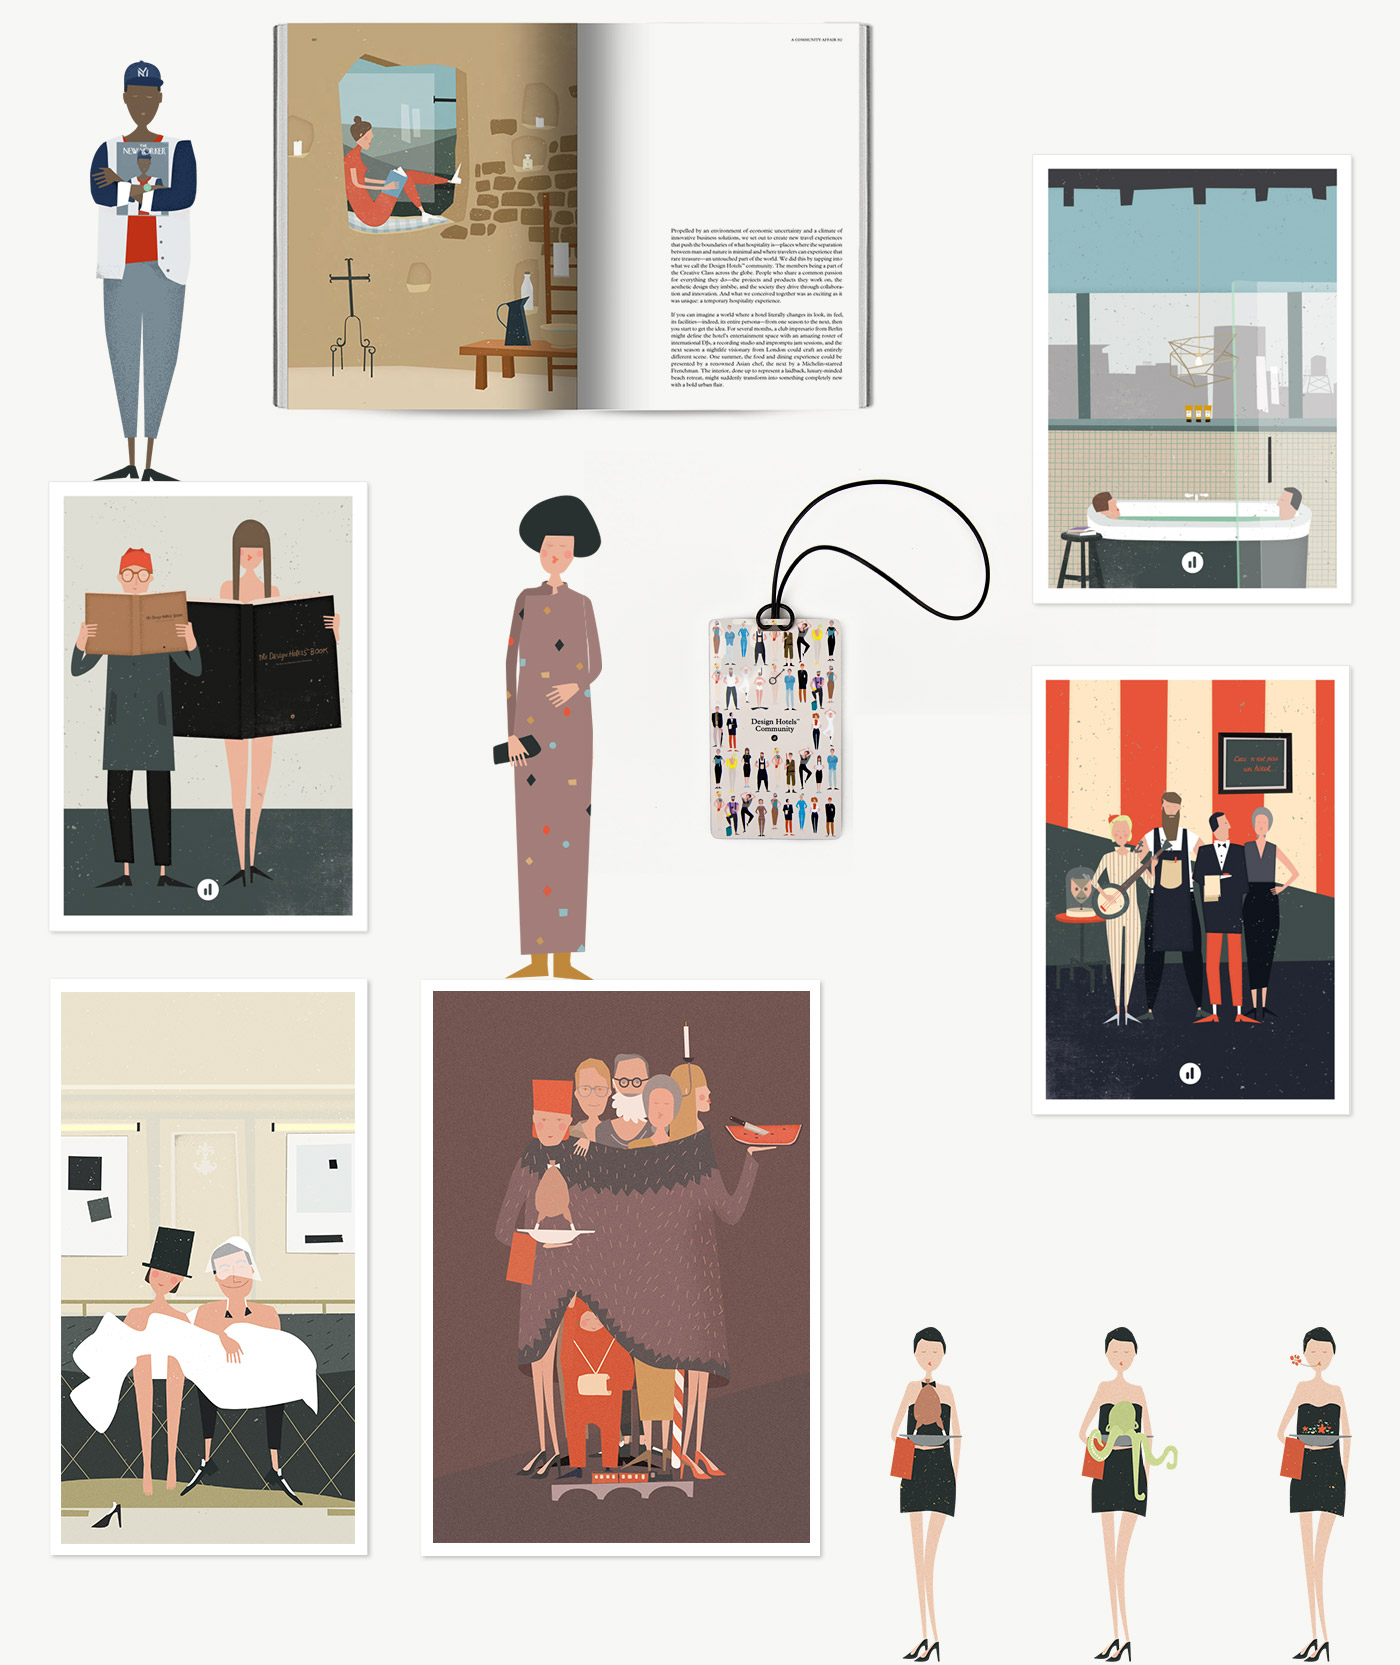 designhotels-community-illus-part1